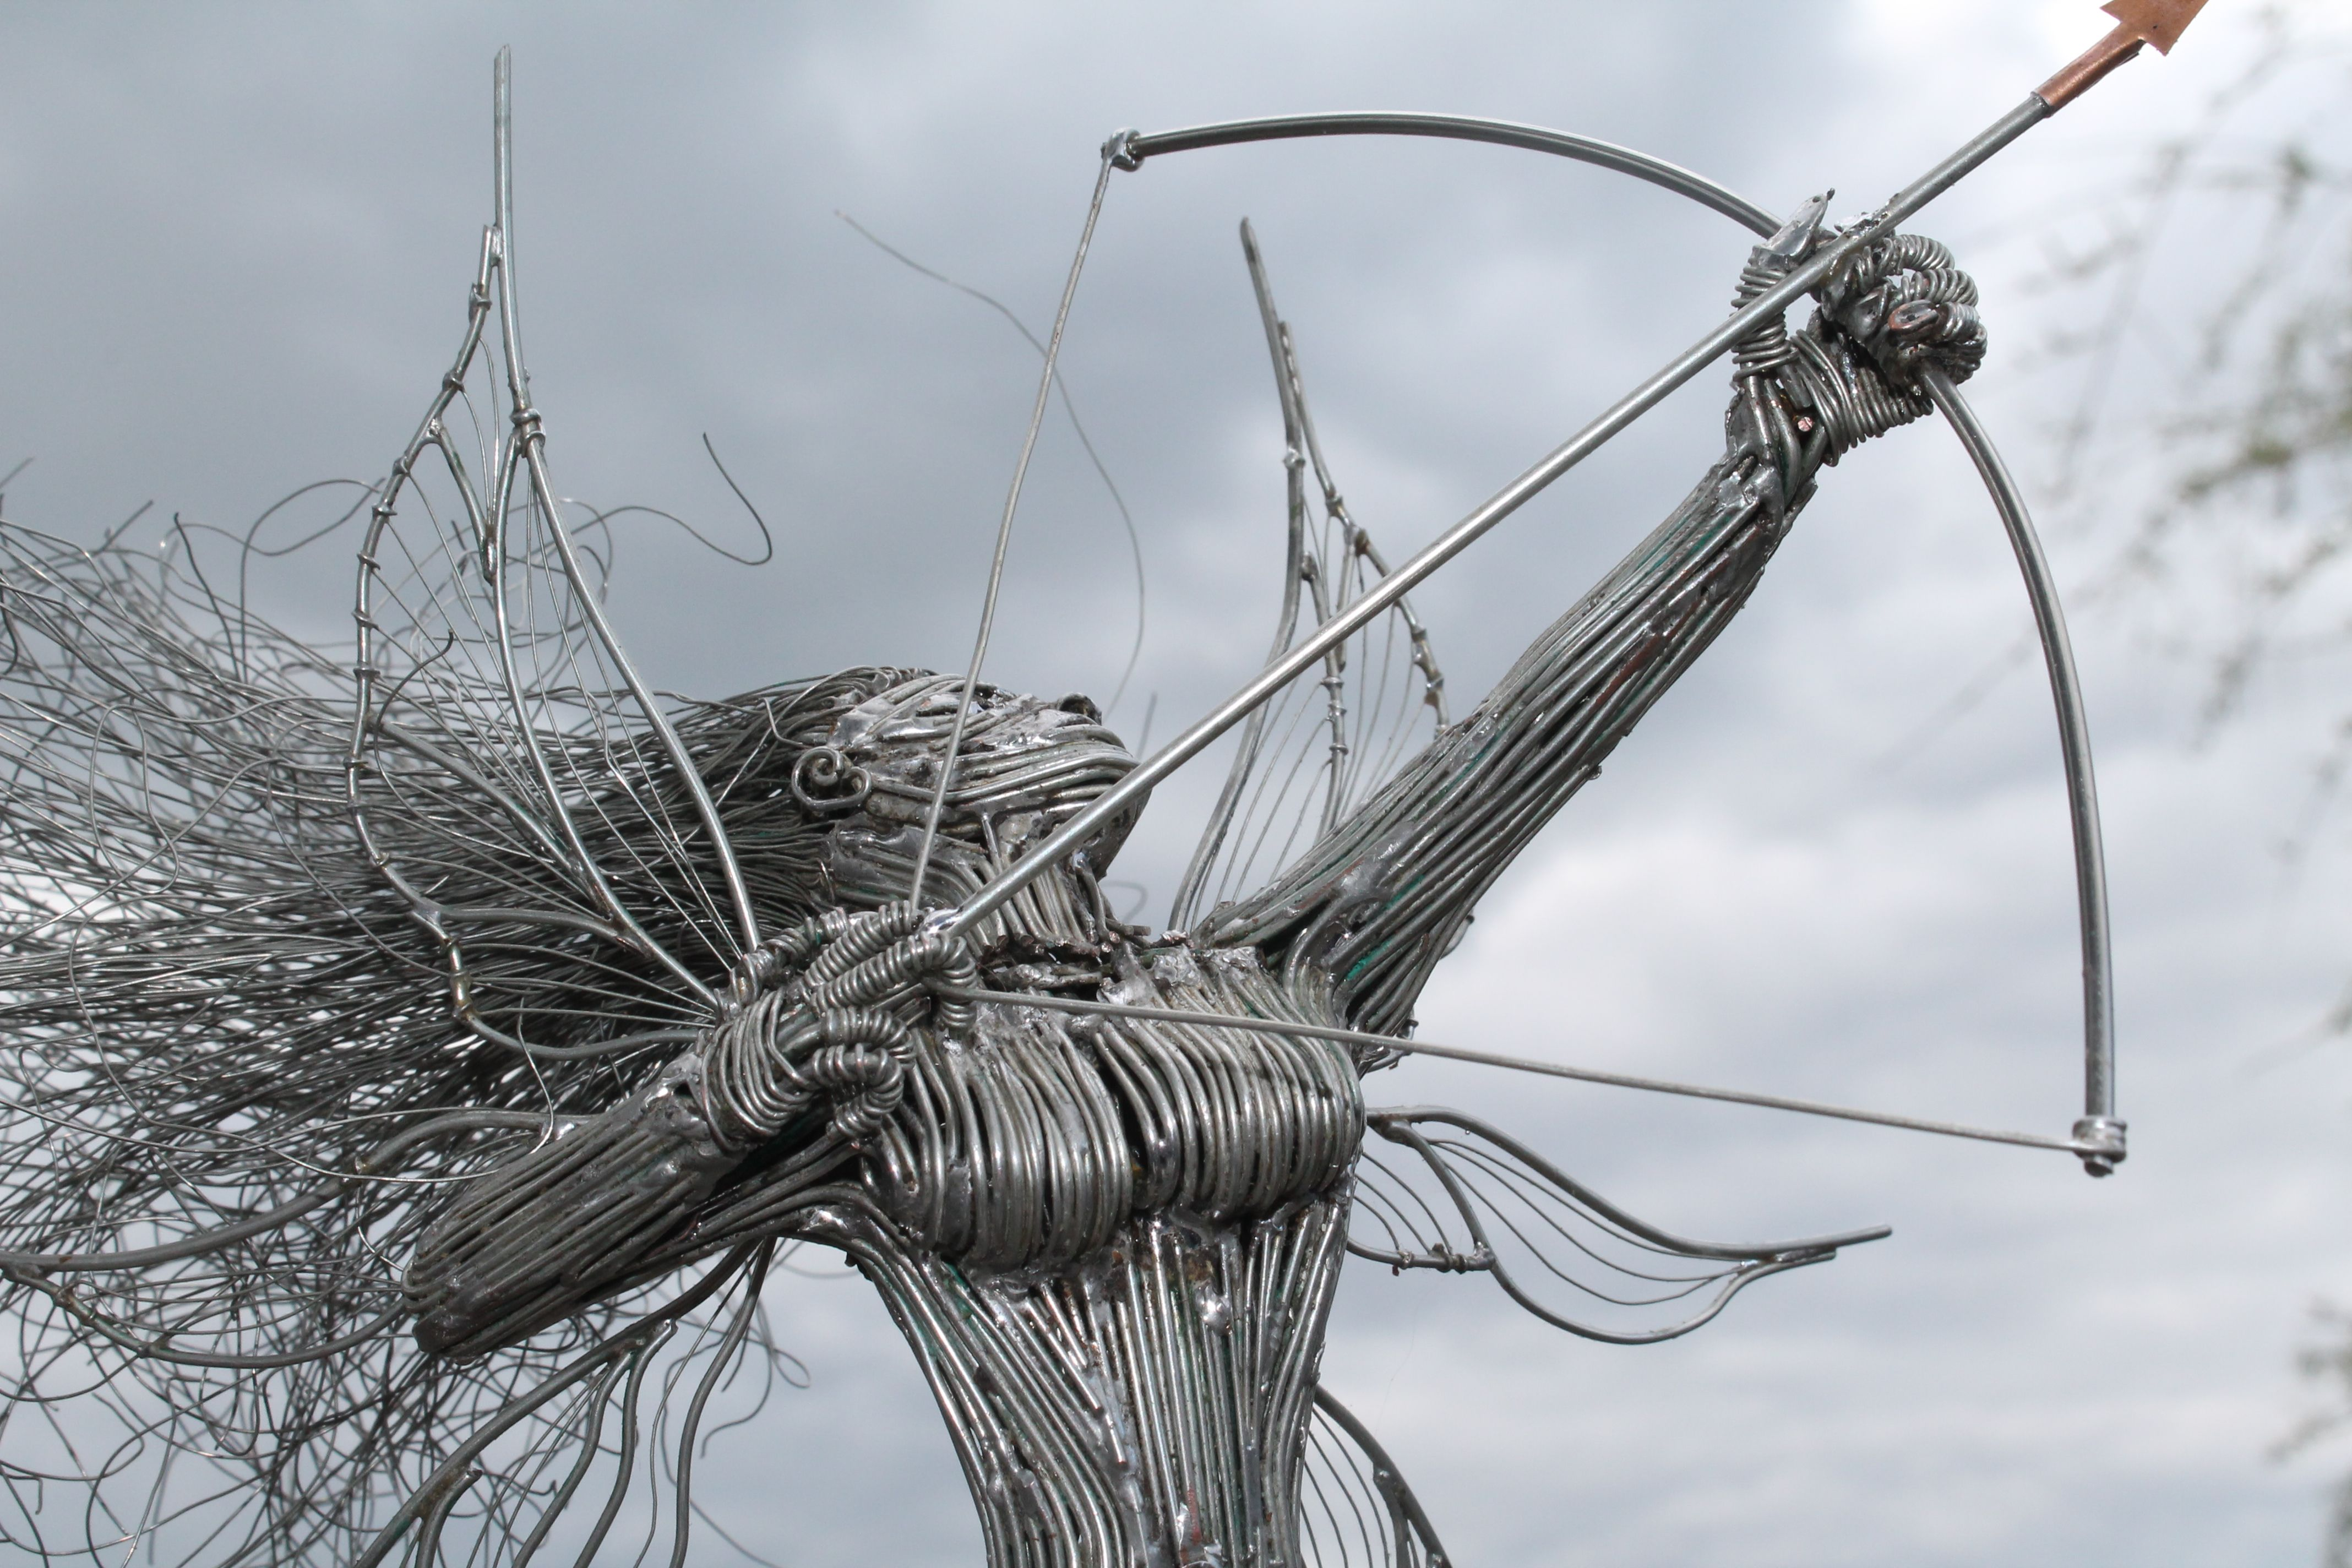 This wire sculpture made by me using tinned copper wire which i ...